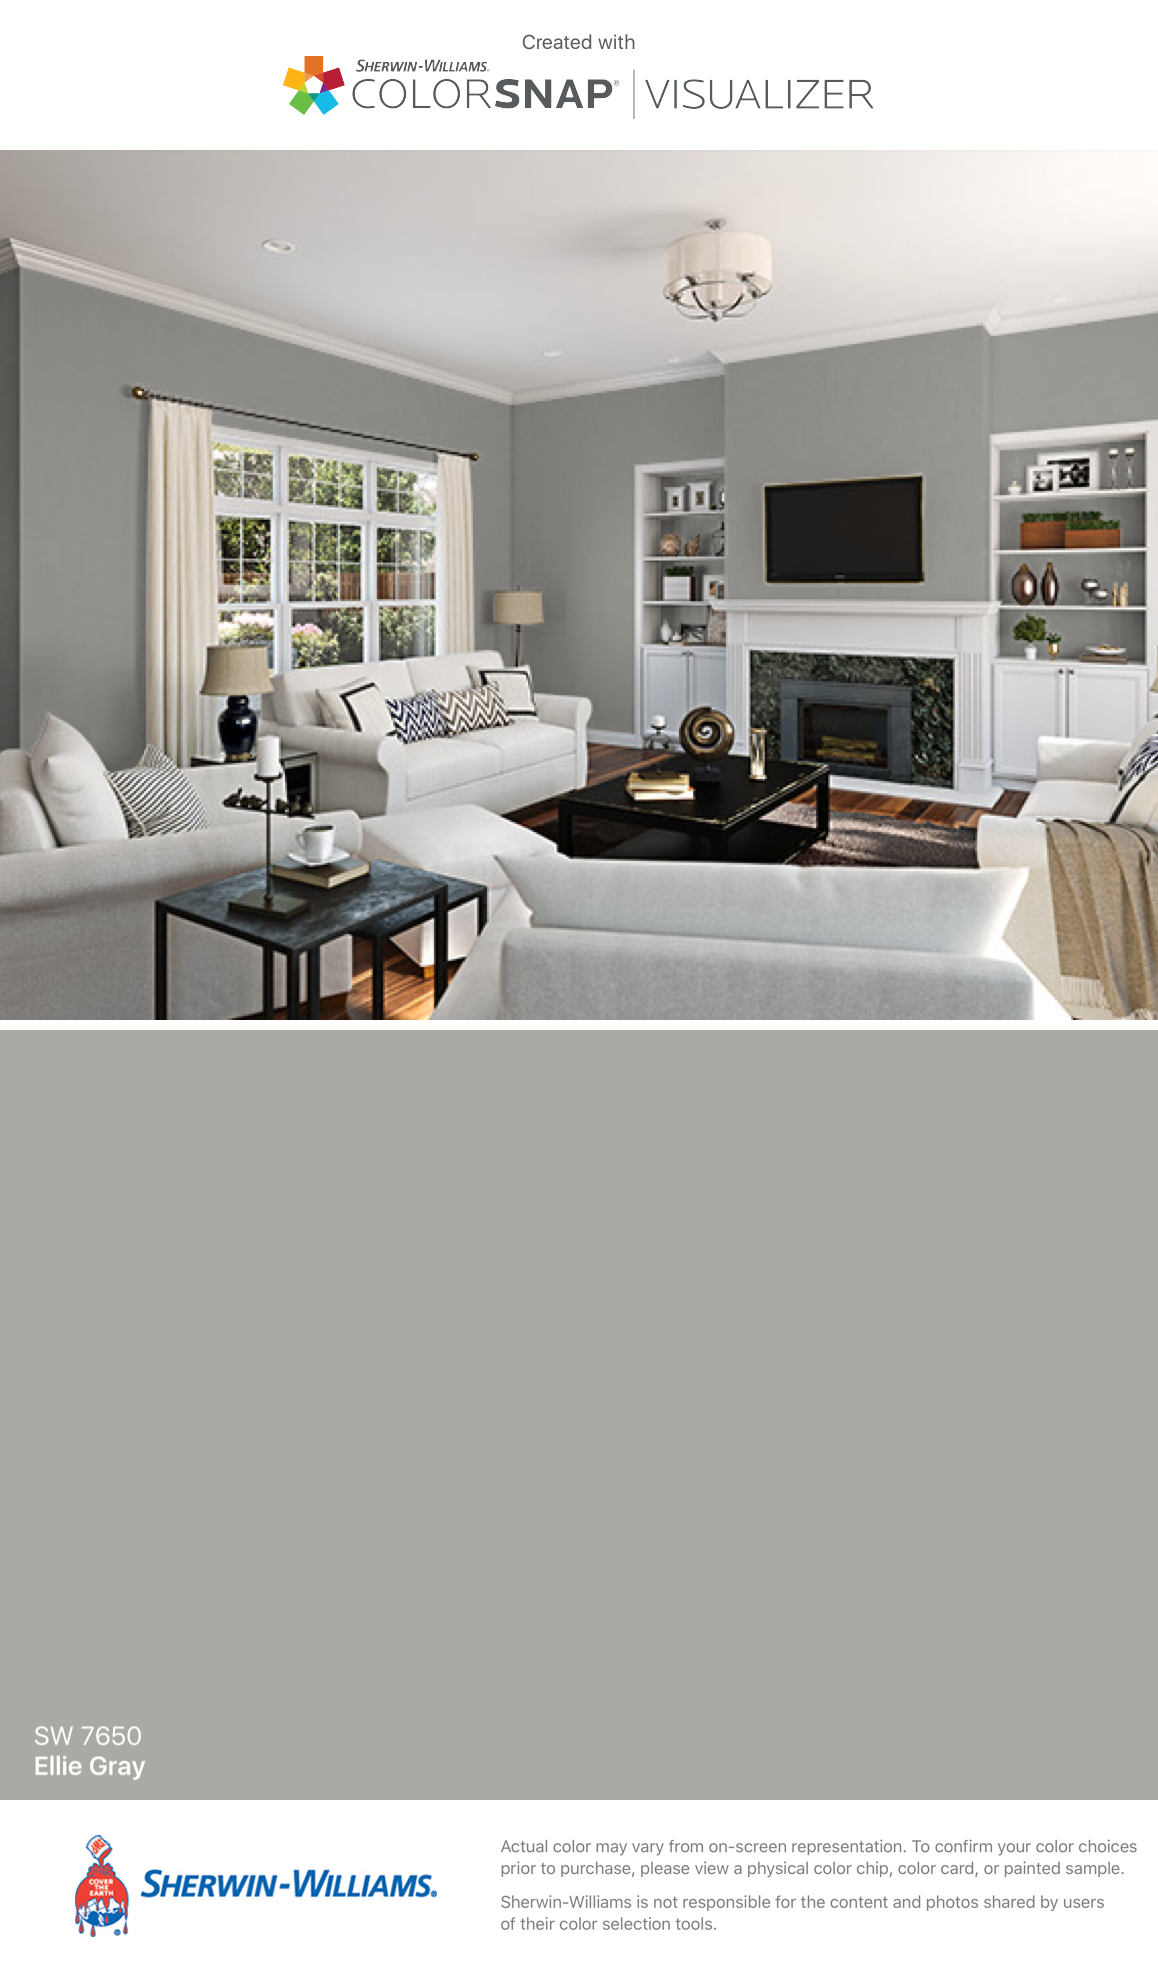 I found this color with colorsnap visualizer for iphone by sherwin williams ellie gray sw 7650